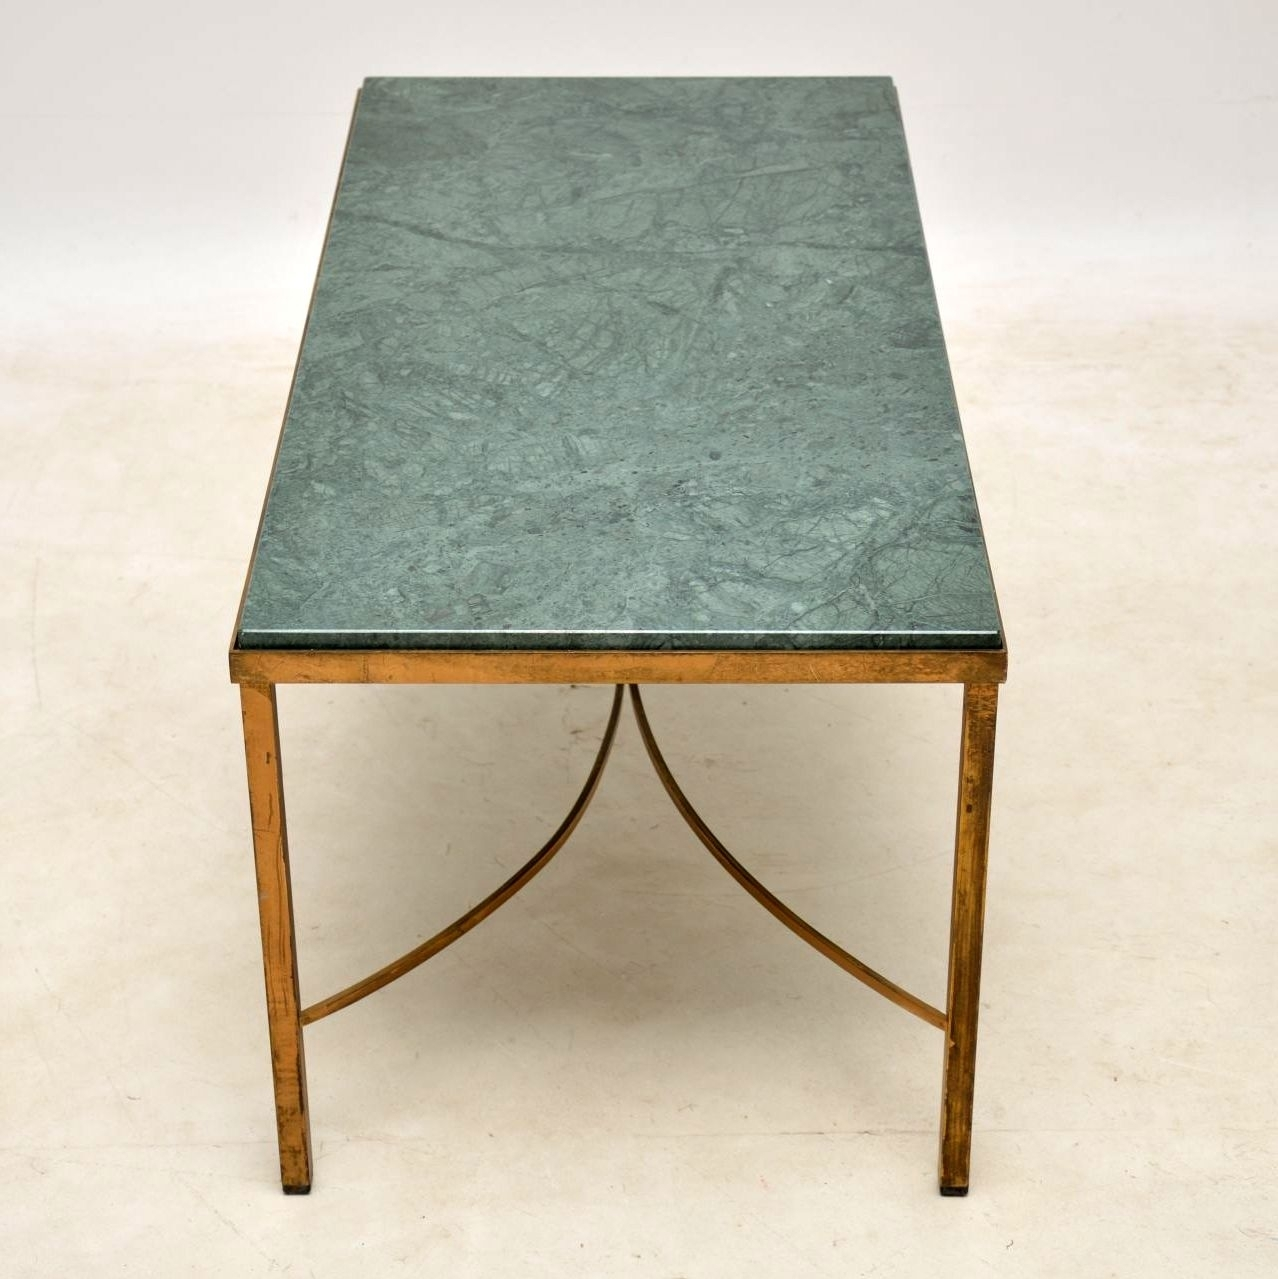 Antique French Marble & Brass Coffee Table | Marylebone Antiques within Mid-Century Modern Marble Coffee Tables (Image 3 of 30)